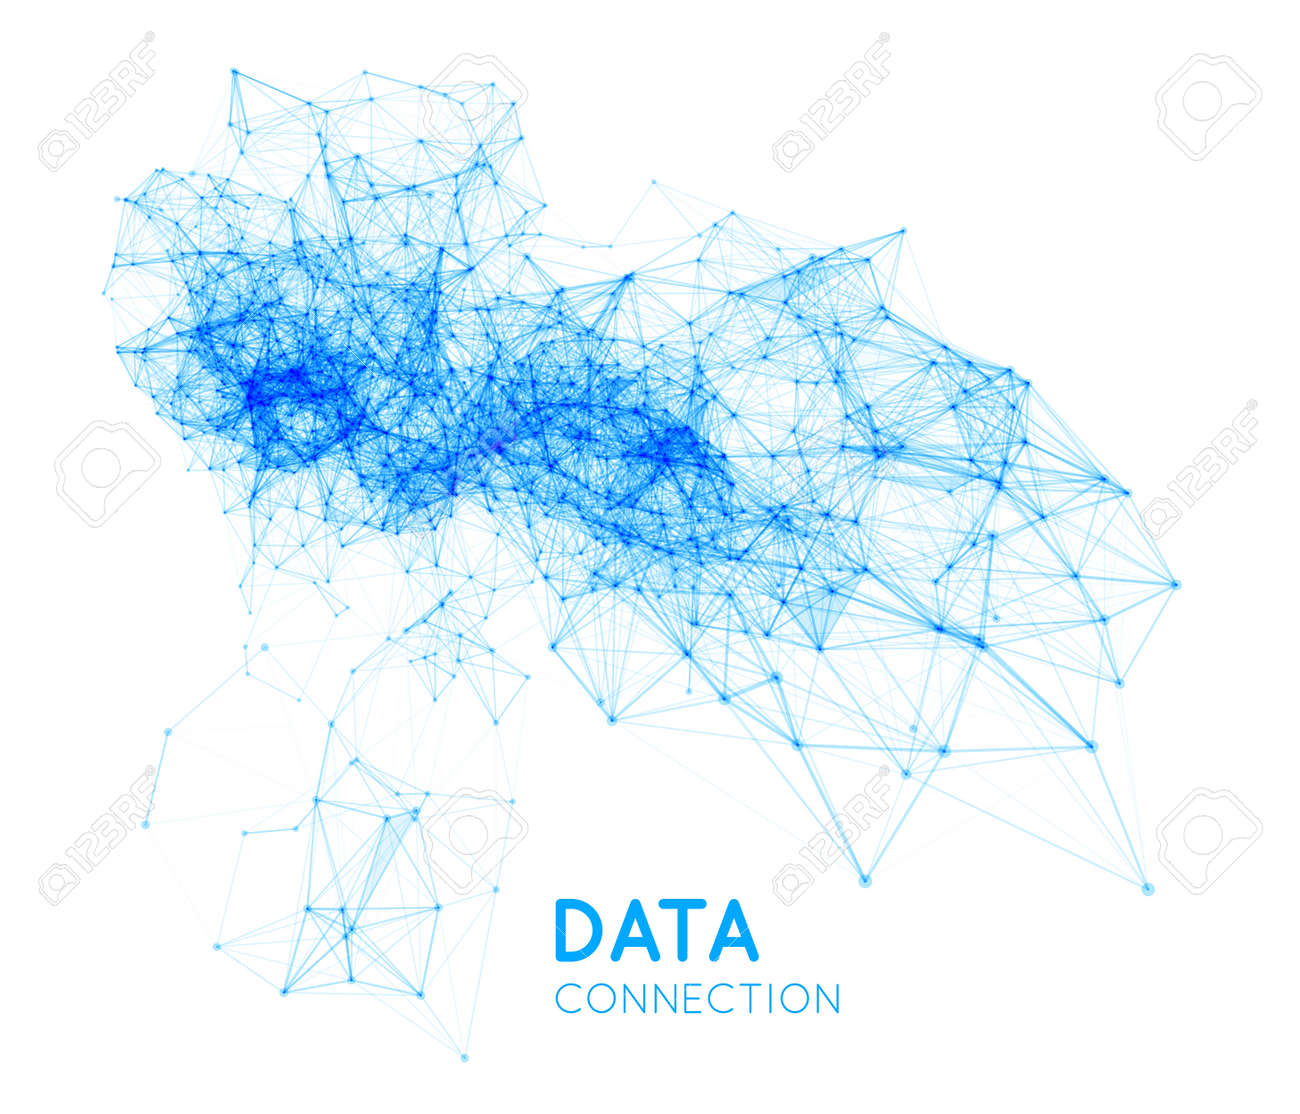 Abstract network connection background - 40622858